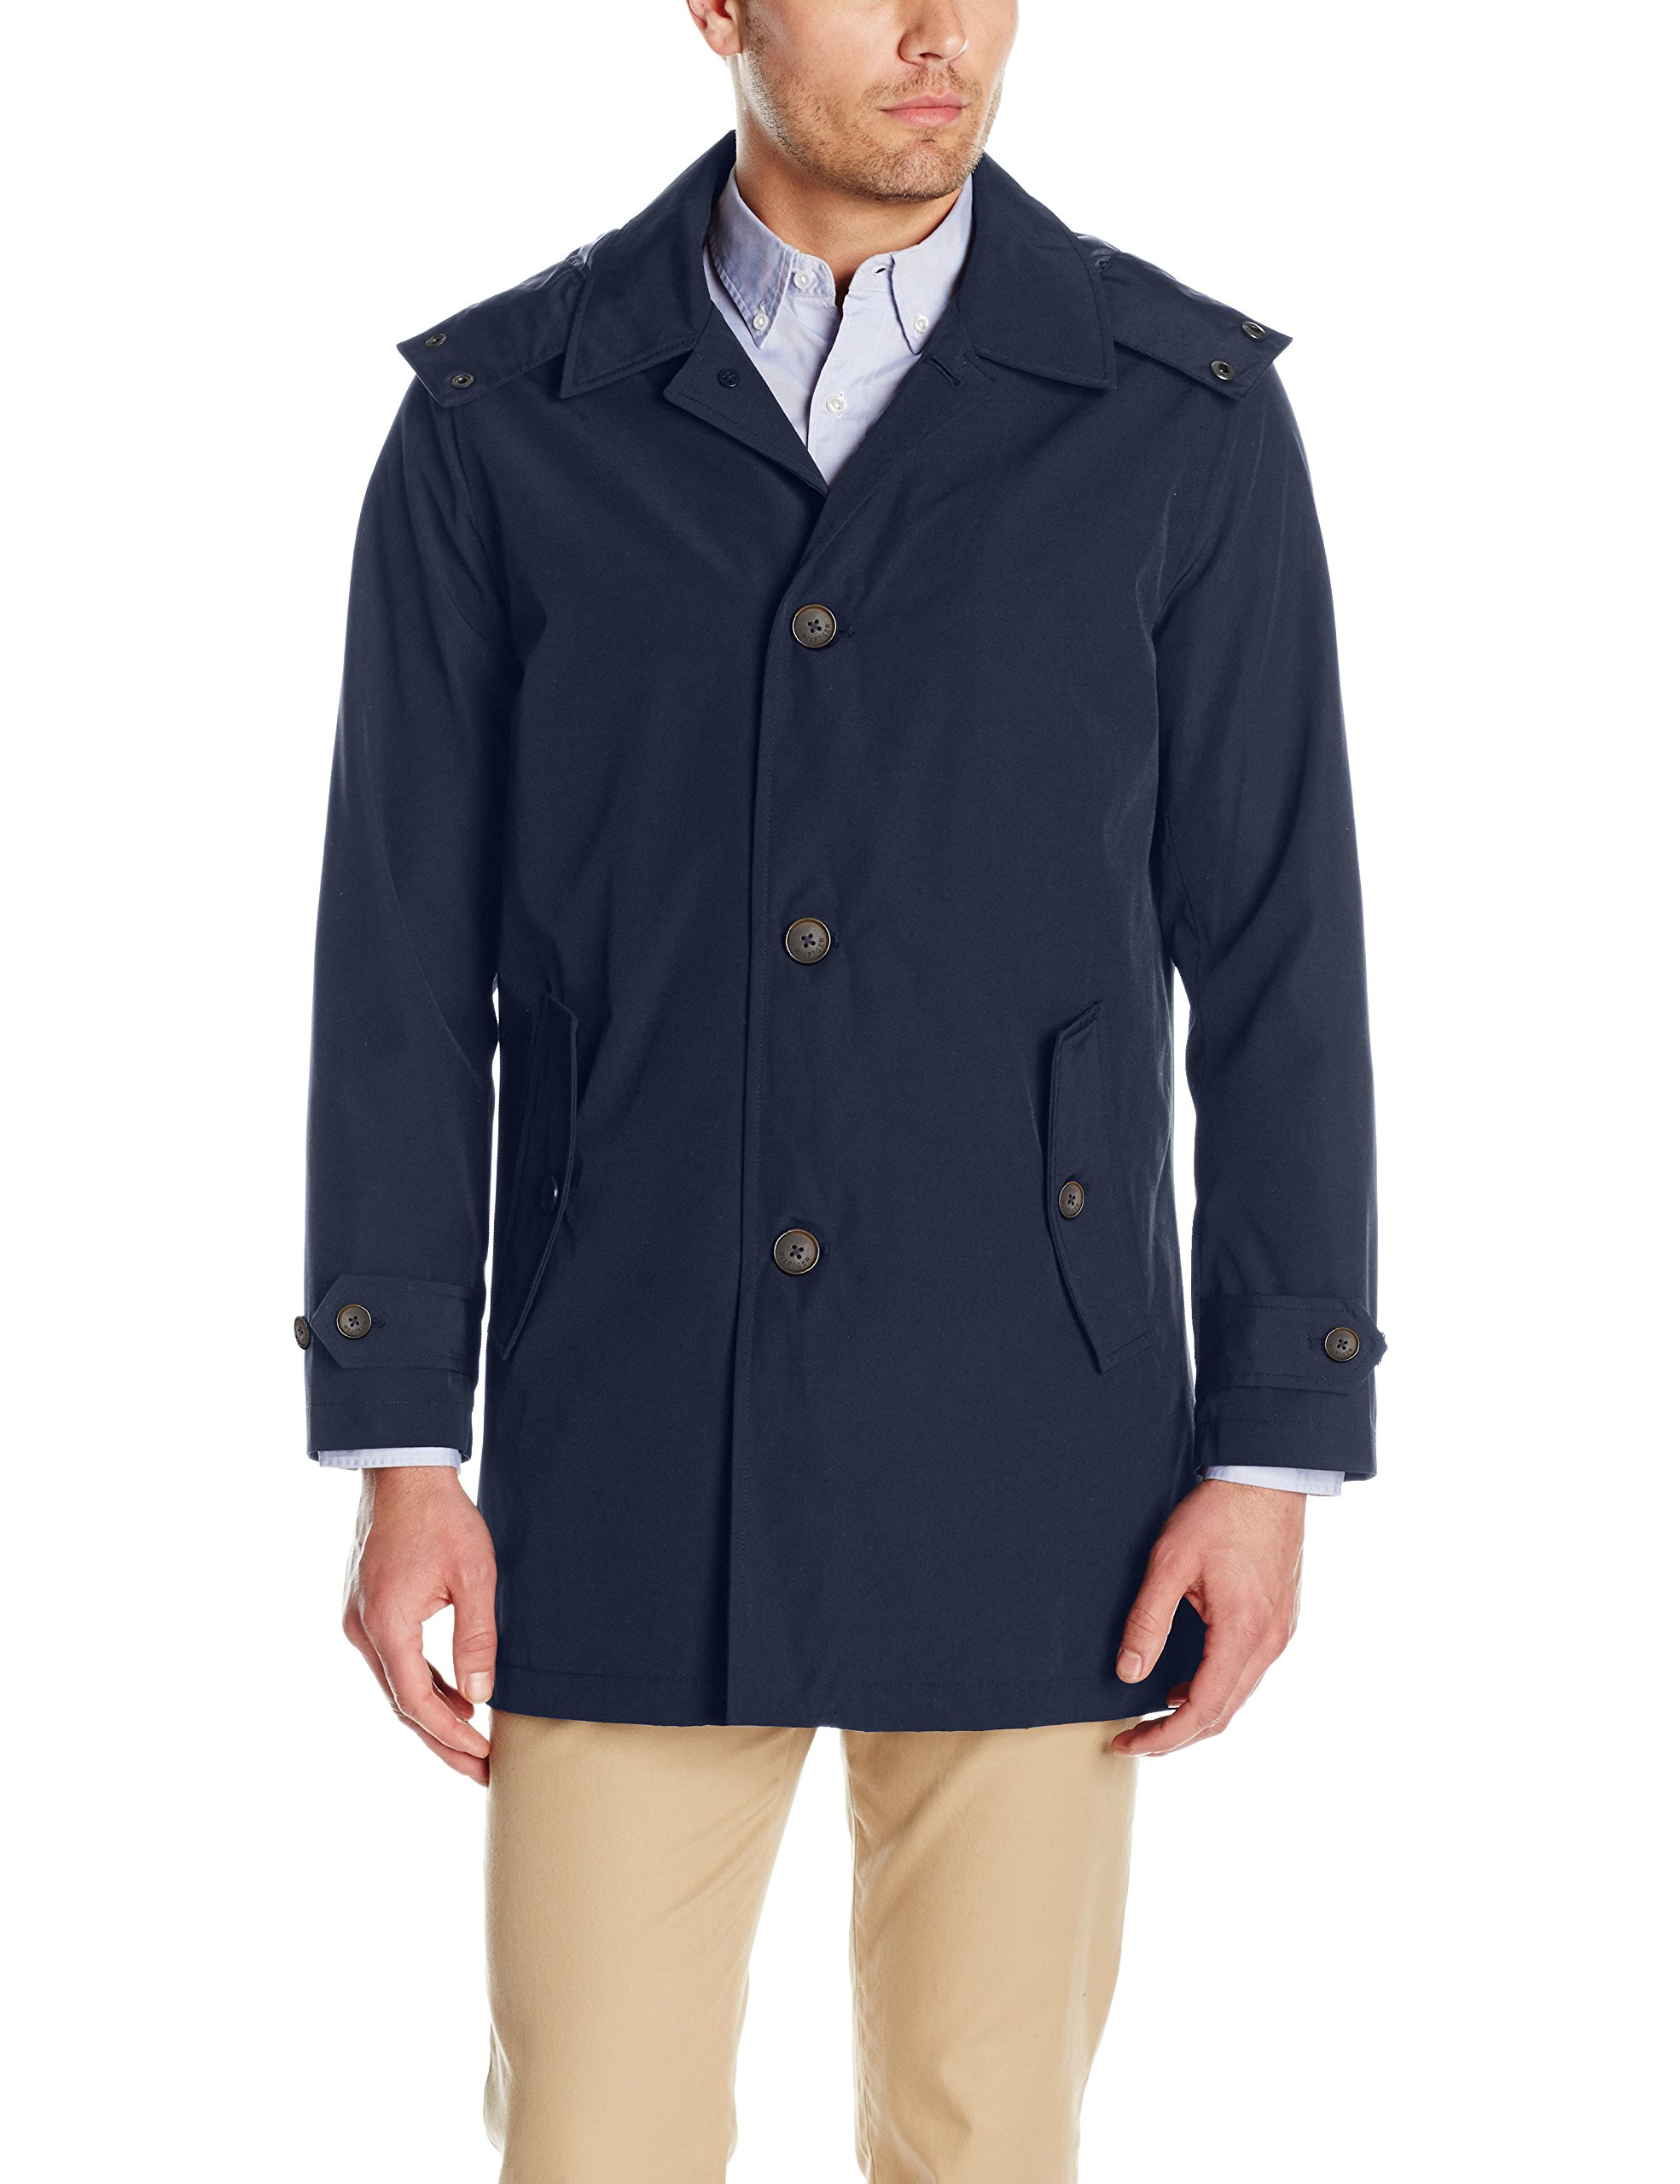 Tommy Hilfiger Men's Hooded Rain Trench Jacket, Navy, S by Tommy Hilfiger